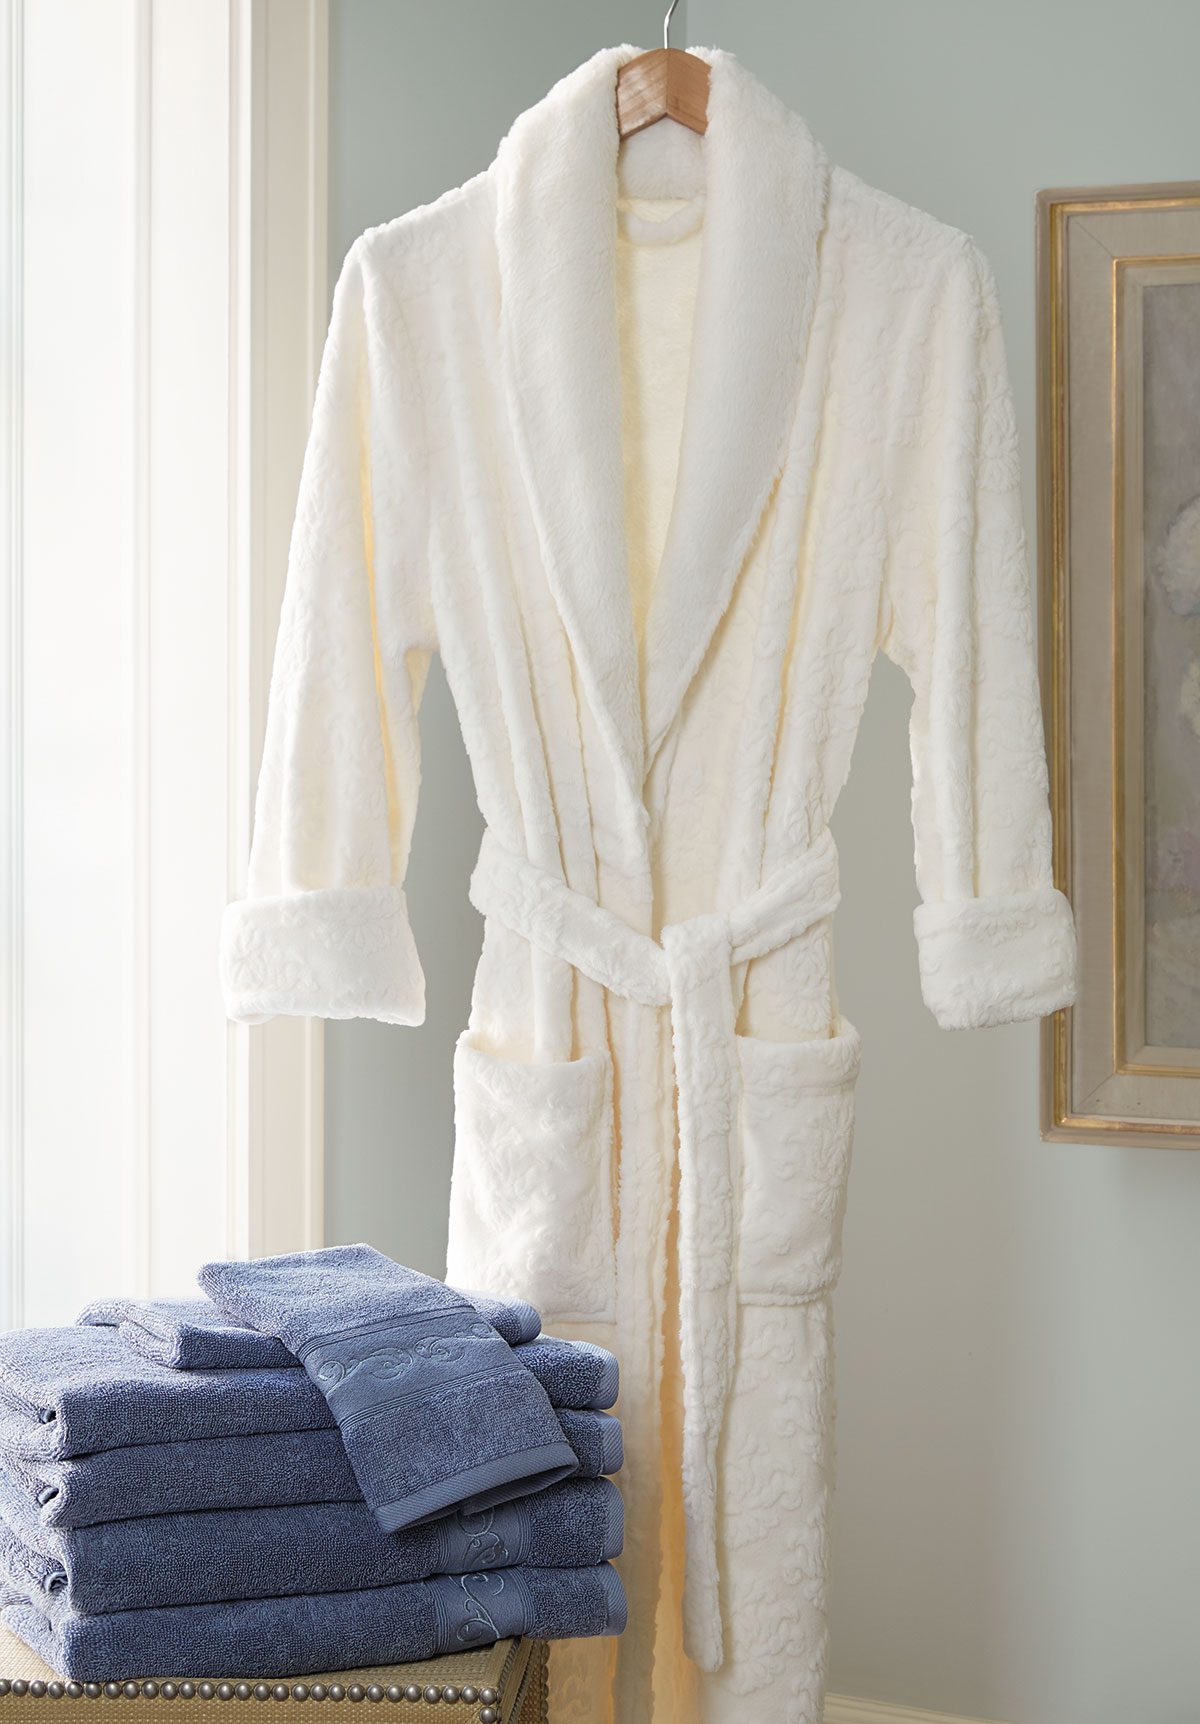 Casa Zeta Jones Bathrobe